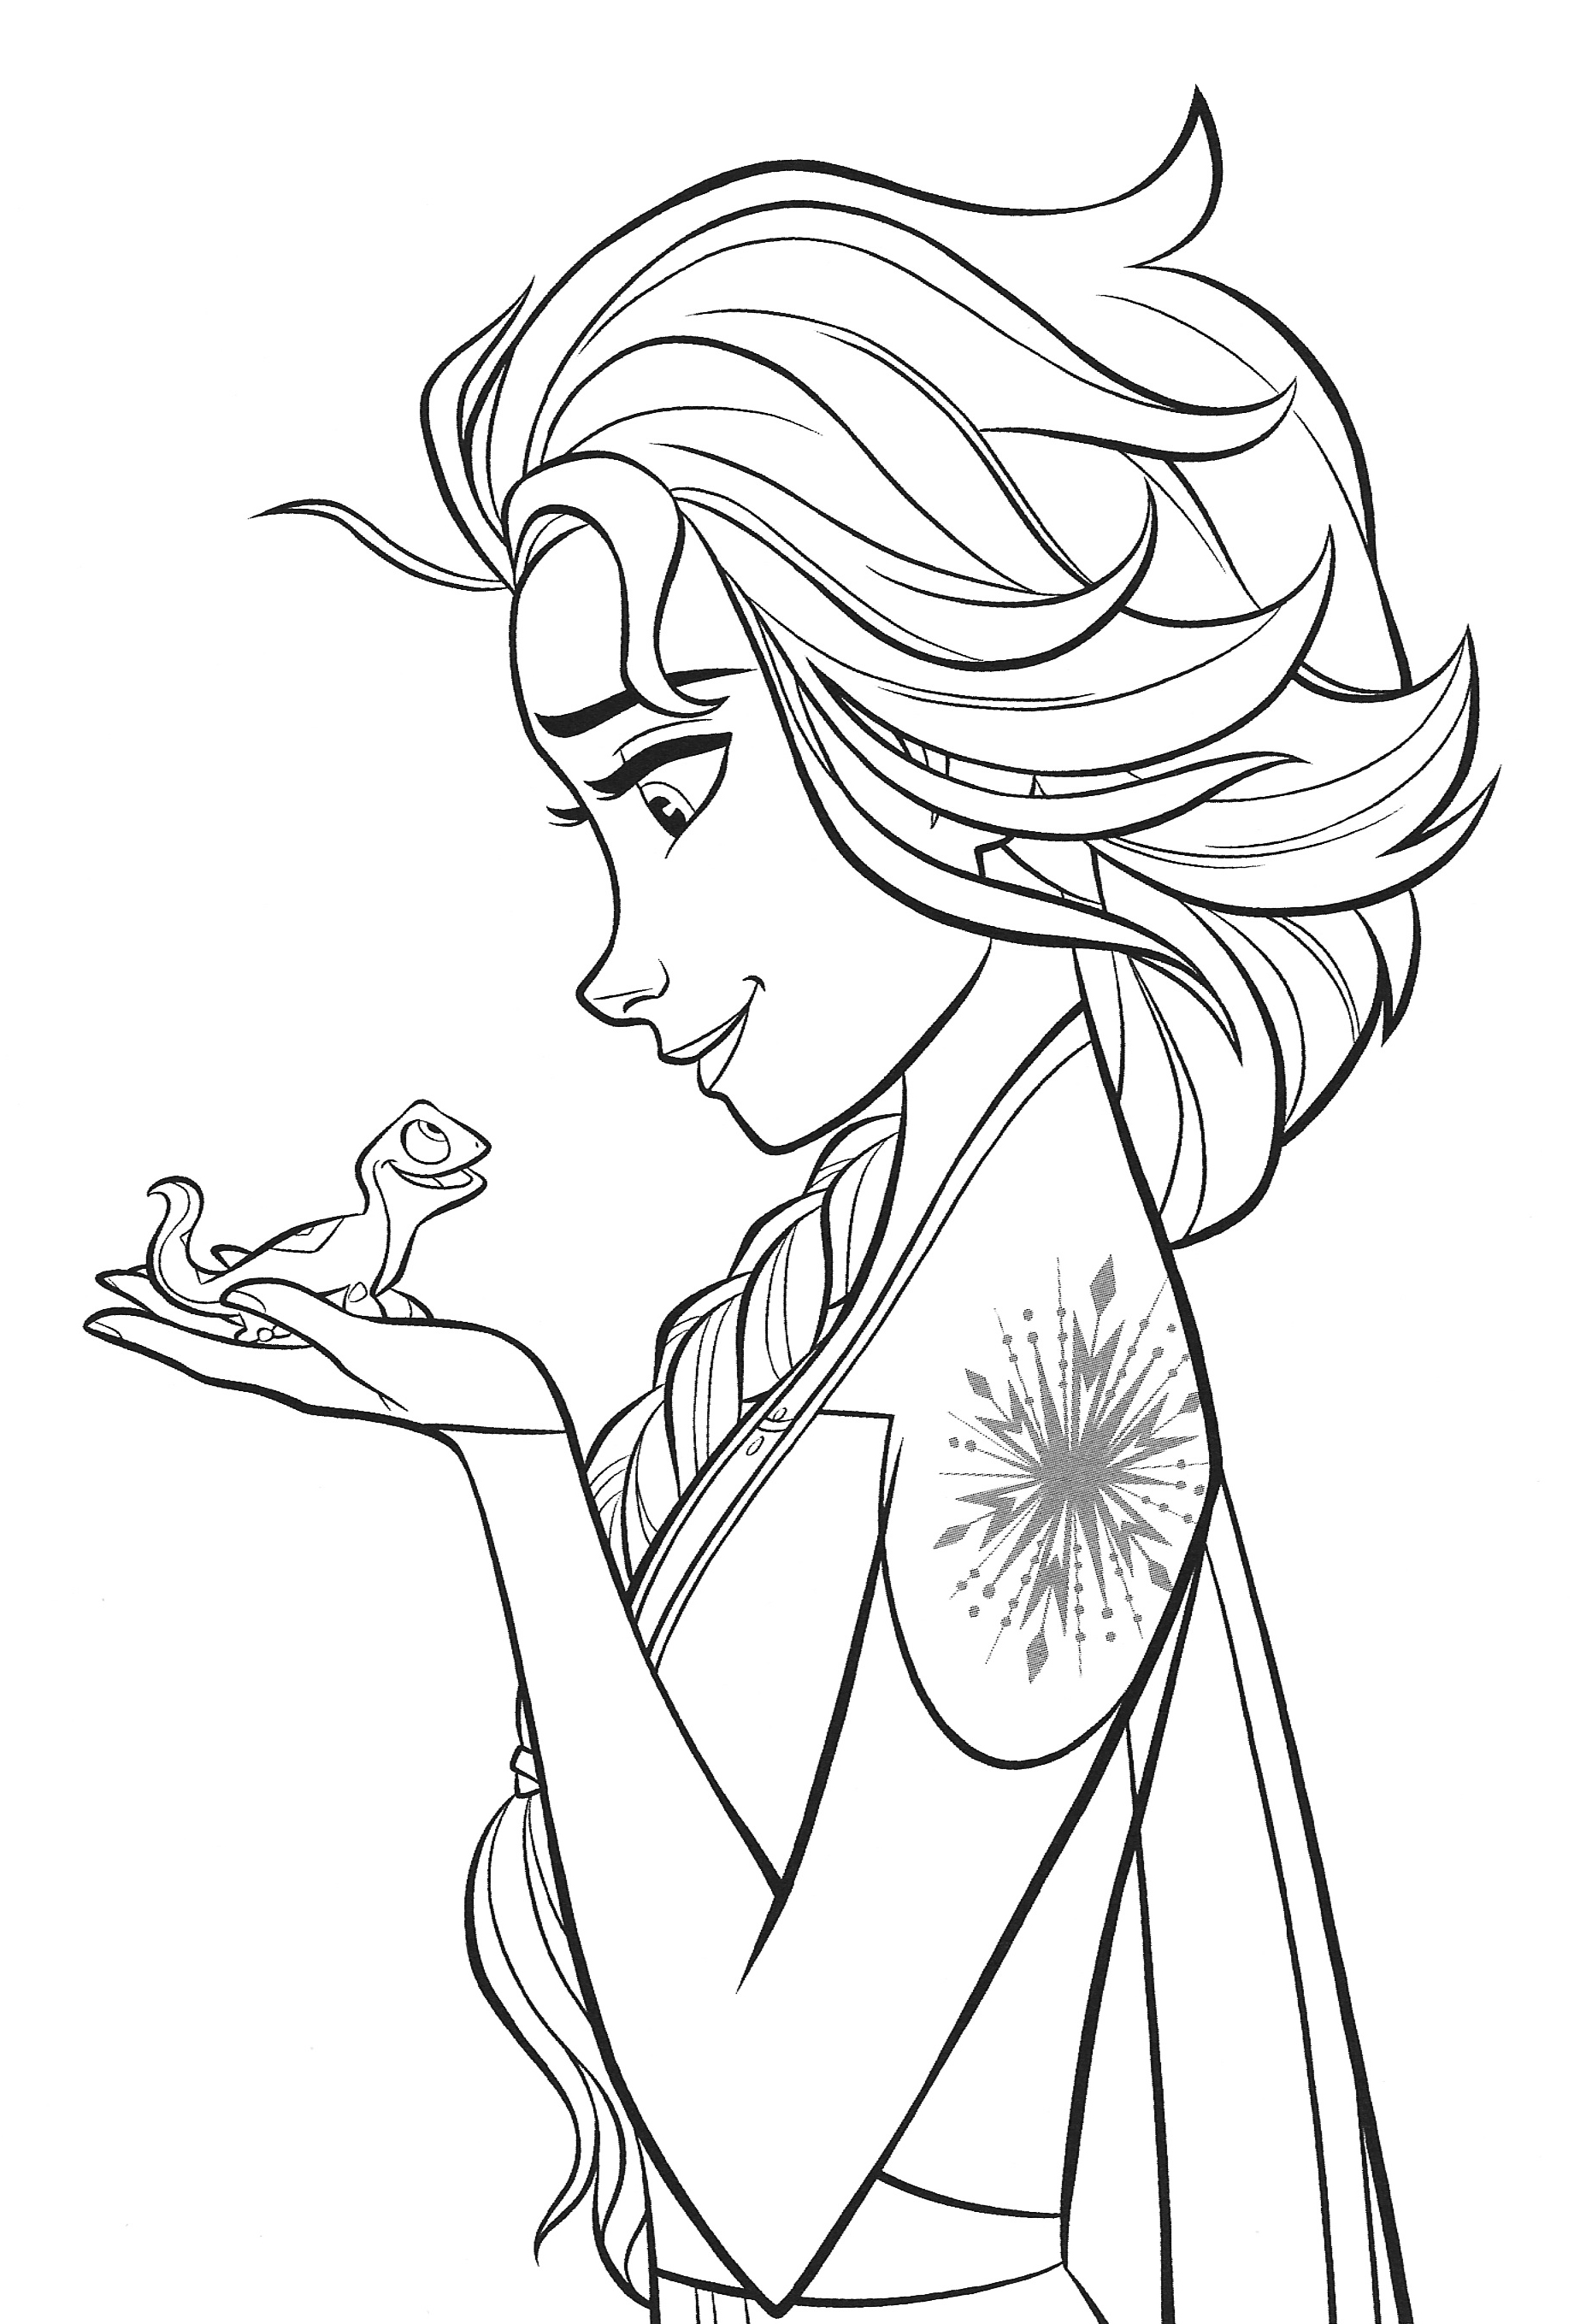 coloring pages frozen frozen free to color for children frozen kids coloring pages frozen pages coloring